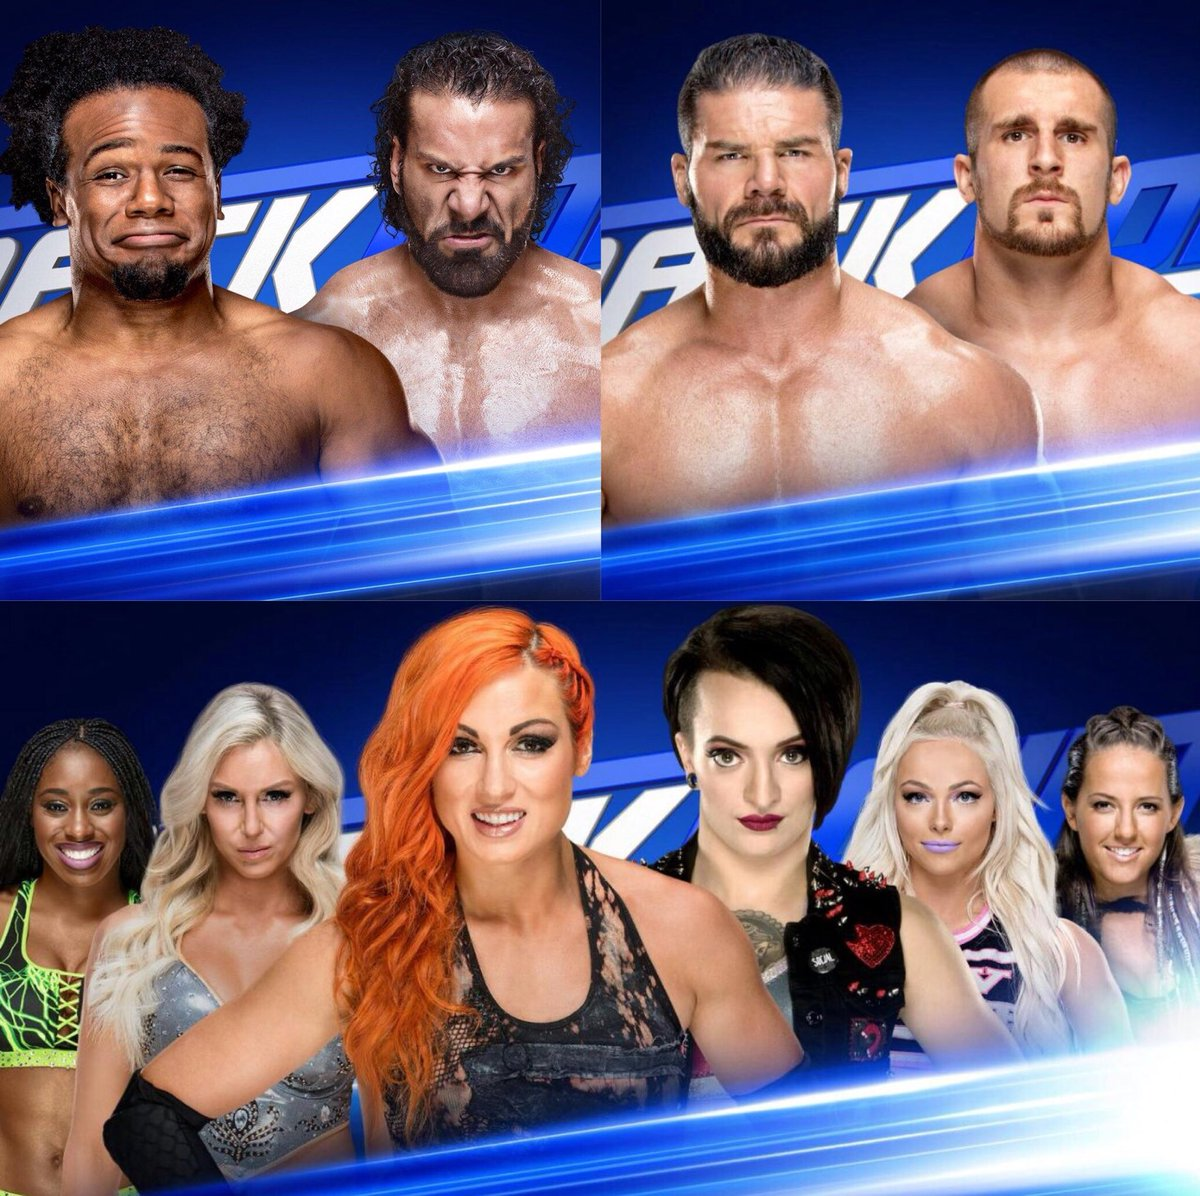 Tonight, We Will Determine  The Two Finalists Who Will  Battle At The #RoyalRumble  For The US Championship   Plus, There Will Be A Six Woman Tag Team Match  On #SDLive {16th Jan, 2018} https://t.co/rNGZUqpoSk